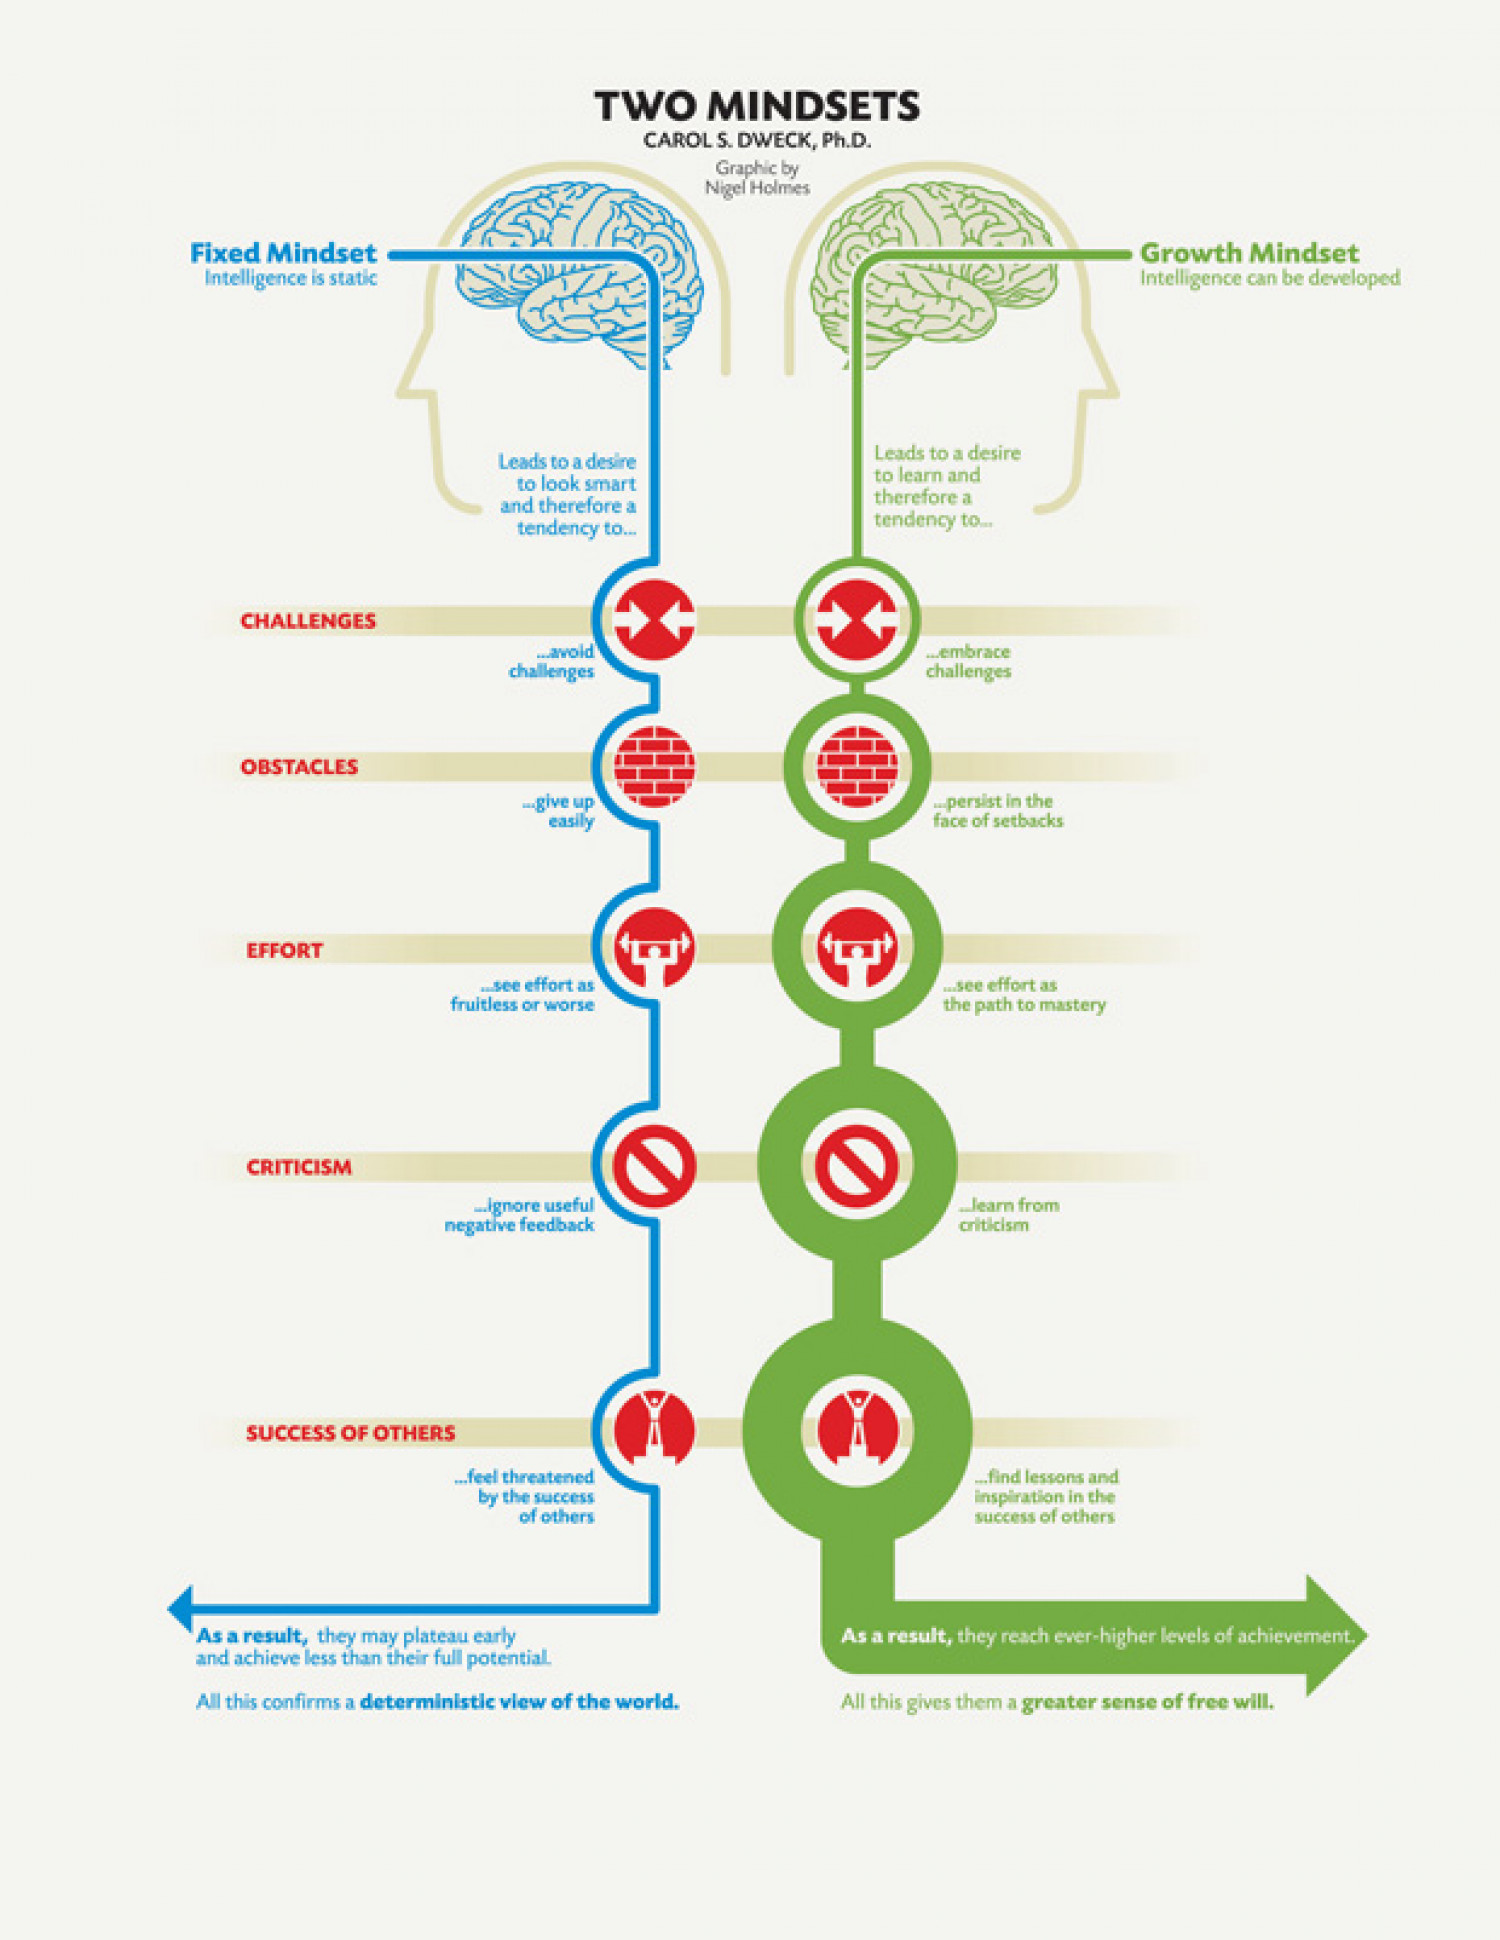 Two types of mindsets that can be adopted by a CEO